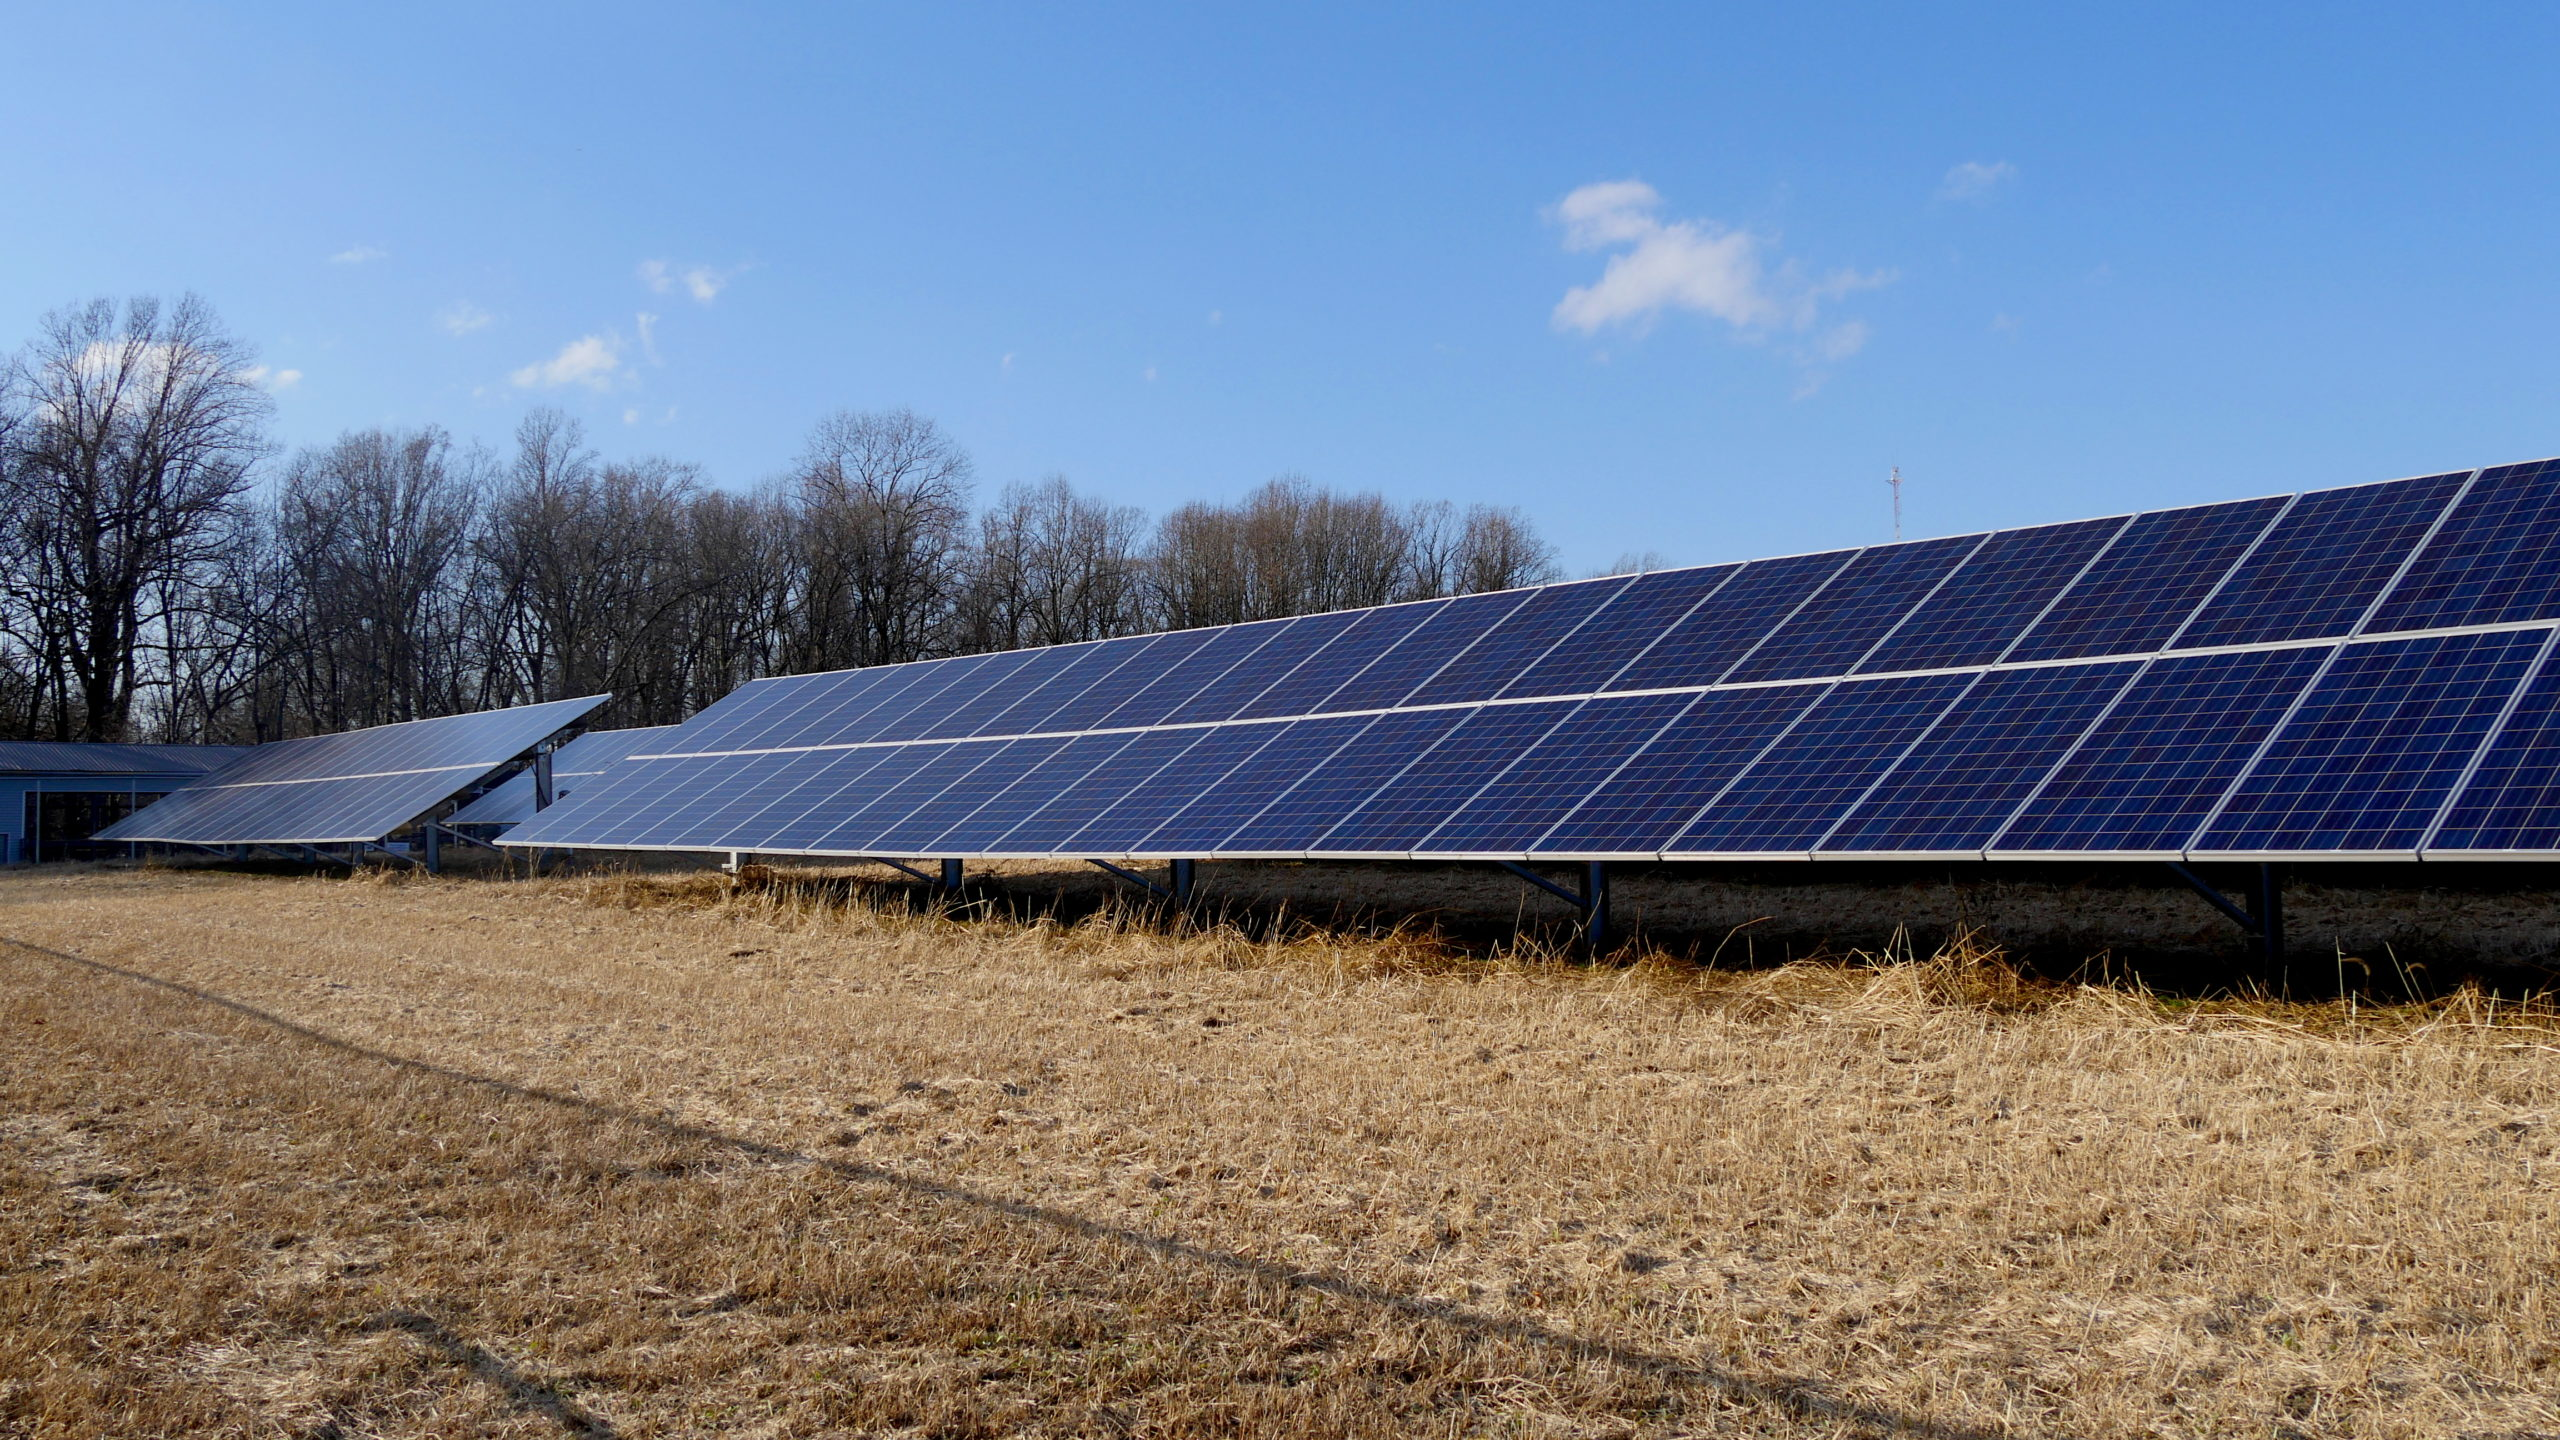 Photo of a solar array in a field.